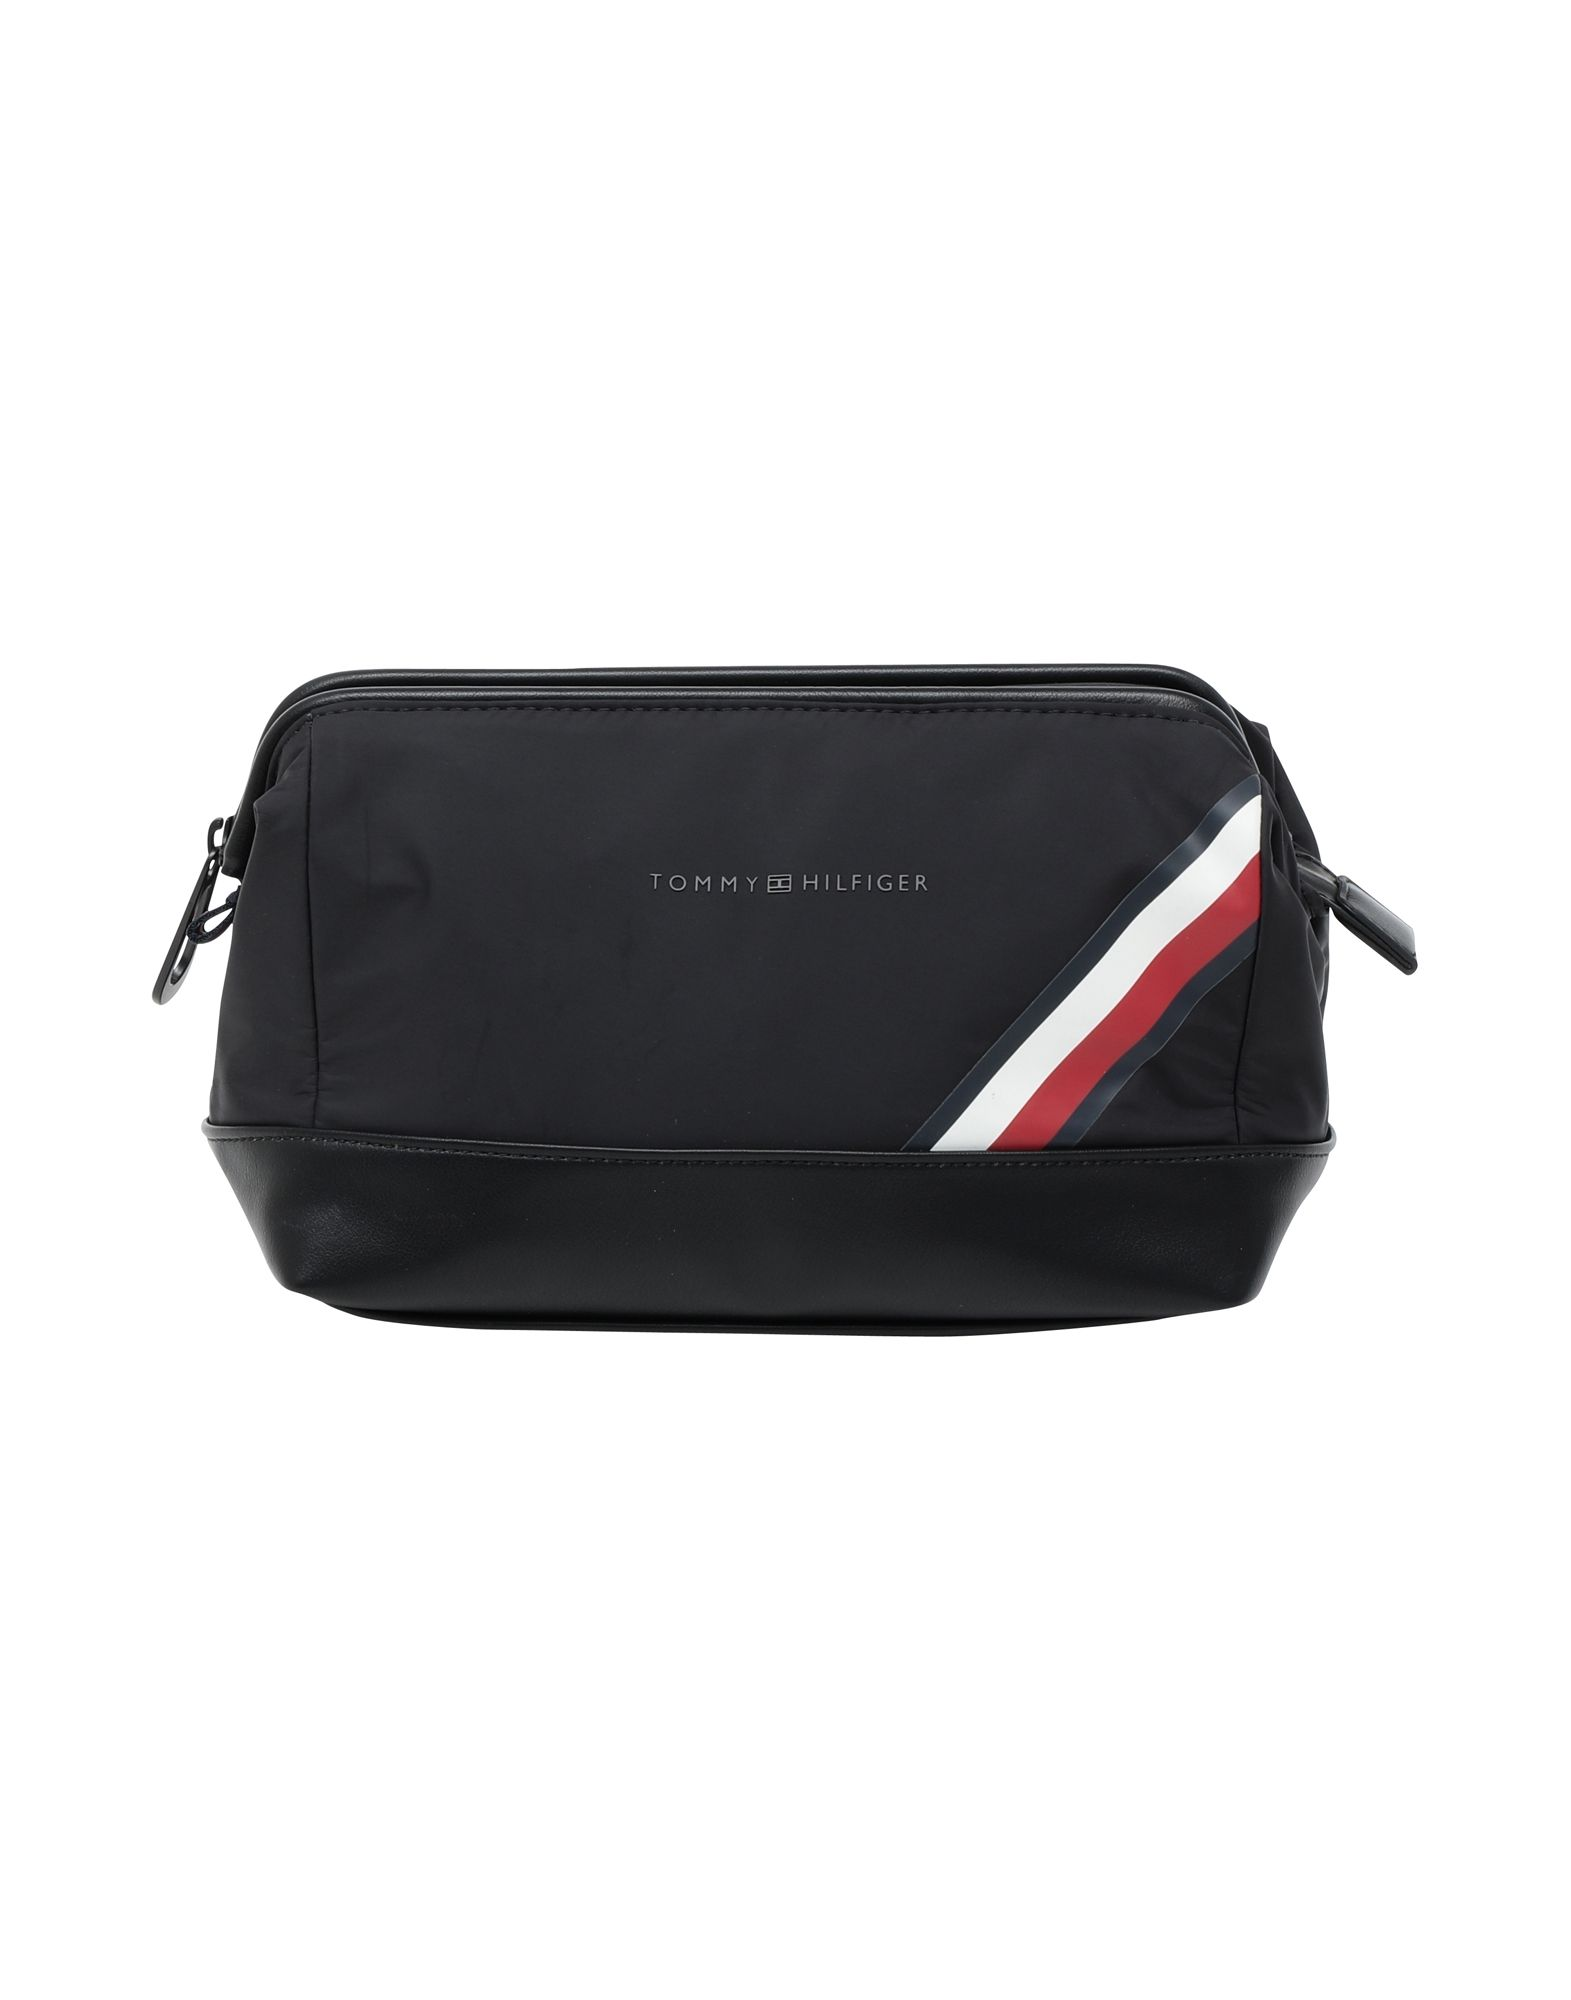 TOMMY HILFIGER Beauty case for wiko tommy 3 wallet case with case kickstand feature card slots